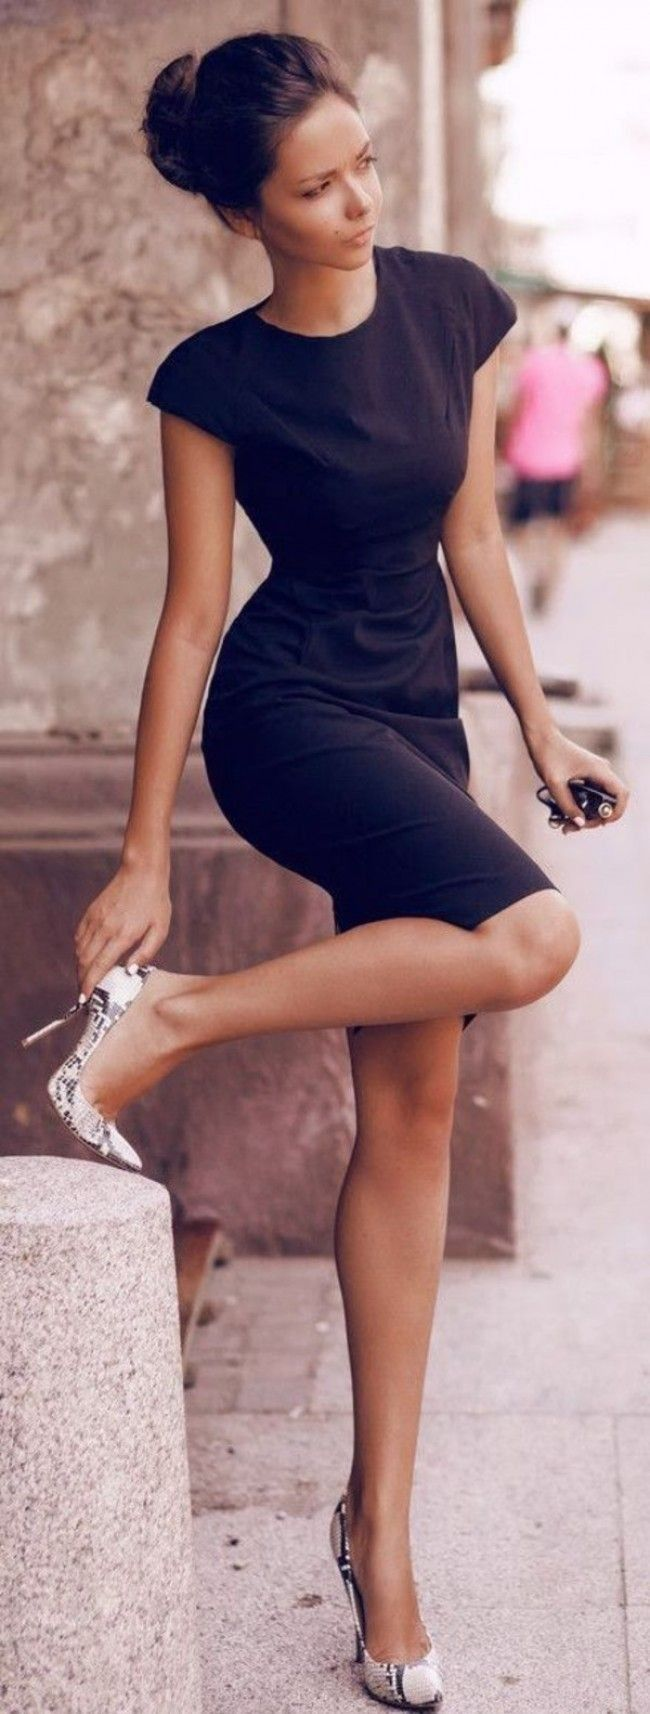 Discover the latest fashion trends from the most fashion-forward women around the world. It's spring  now. Outfit Ideas is giving you some ideas for a...